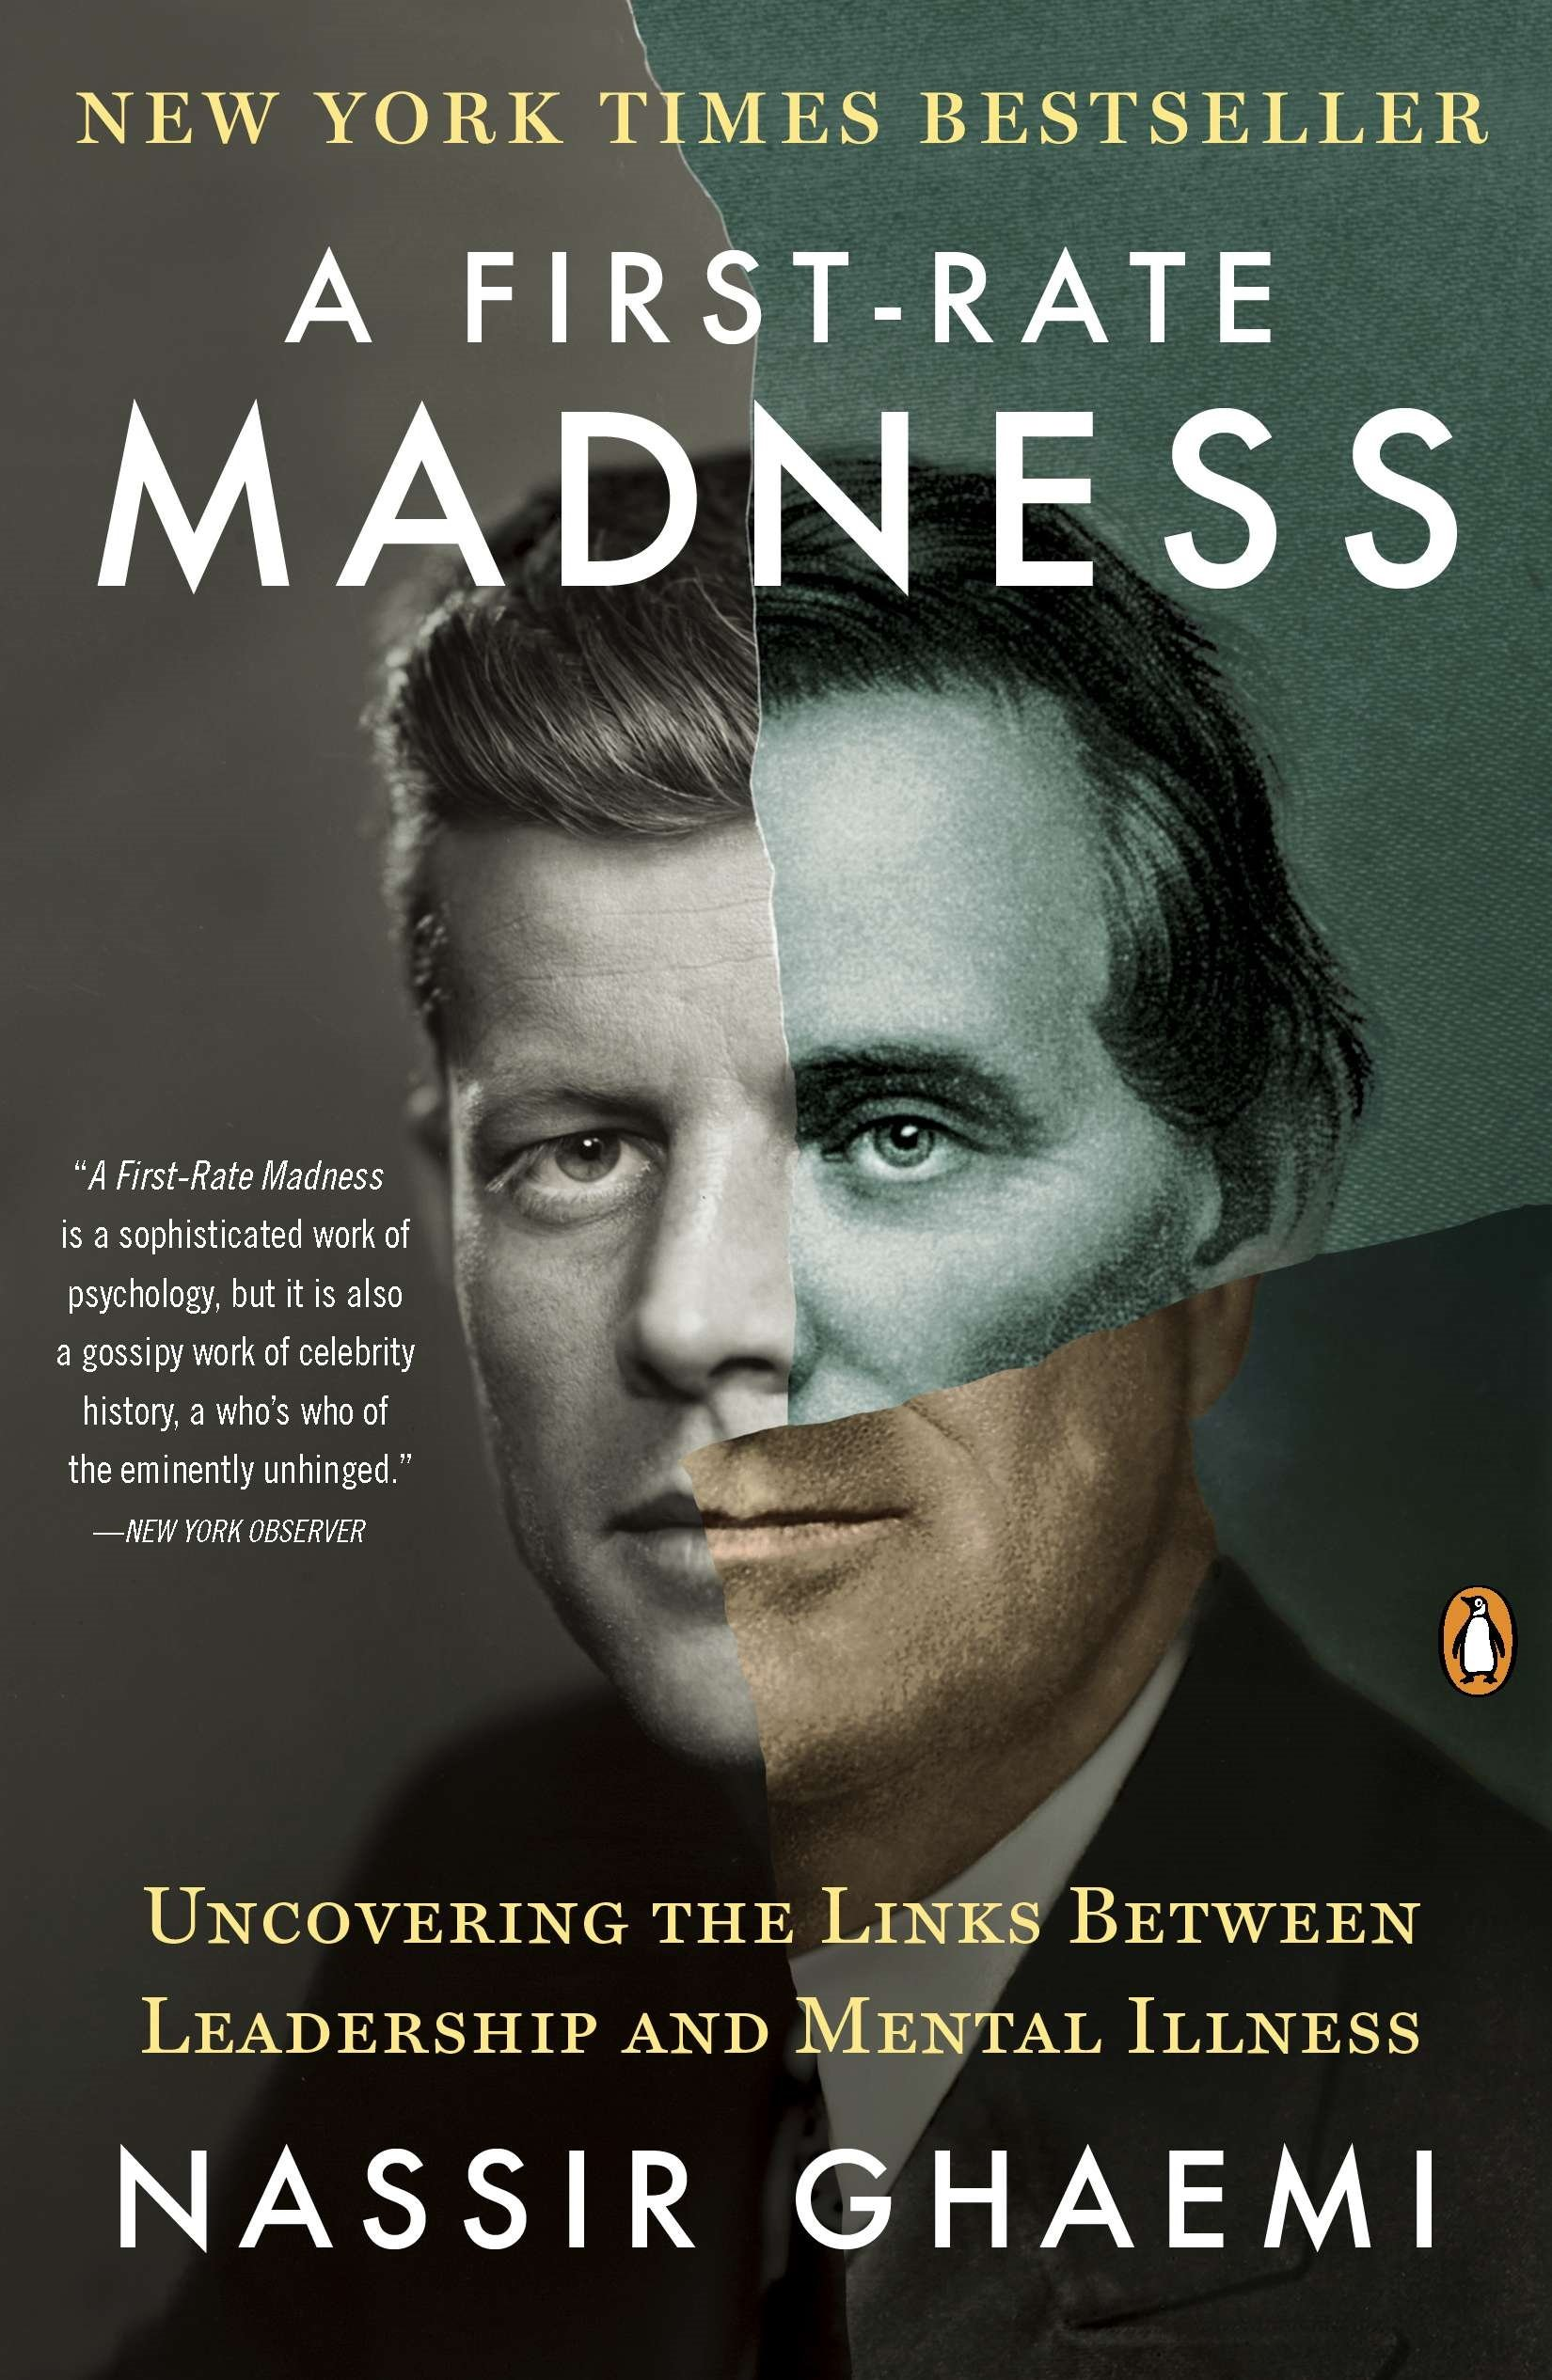 Download ebook A First-Rate Madness Uncovering the Links Between Leadership and Mental Illness